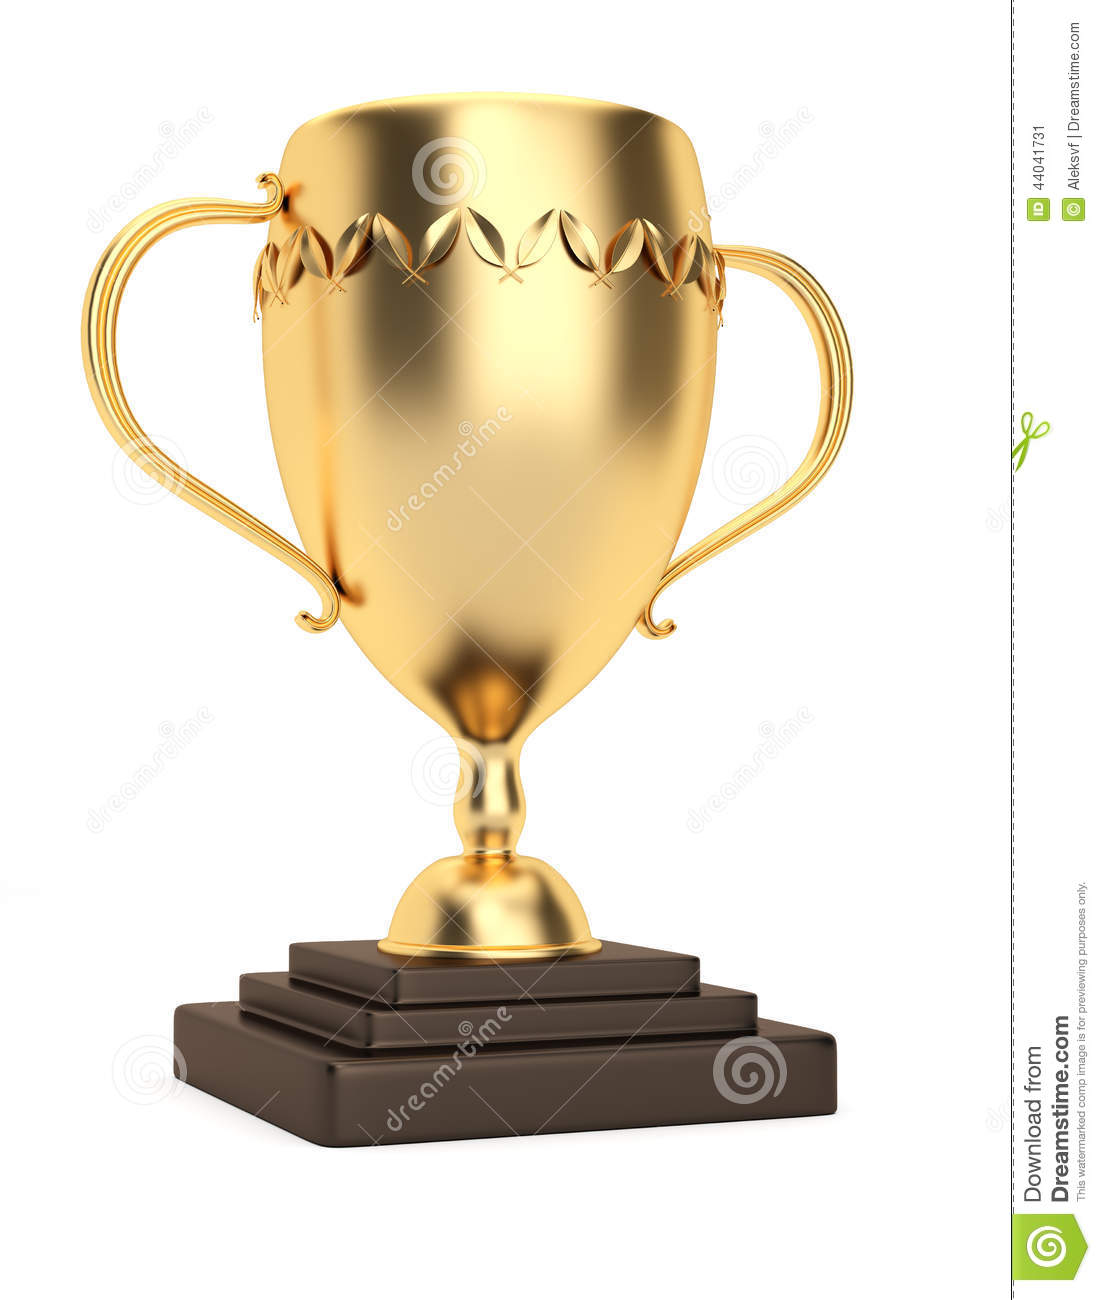 winners goblet free images on white background